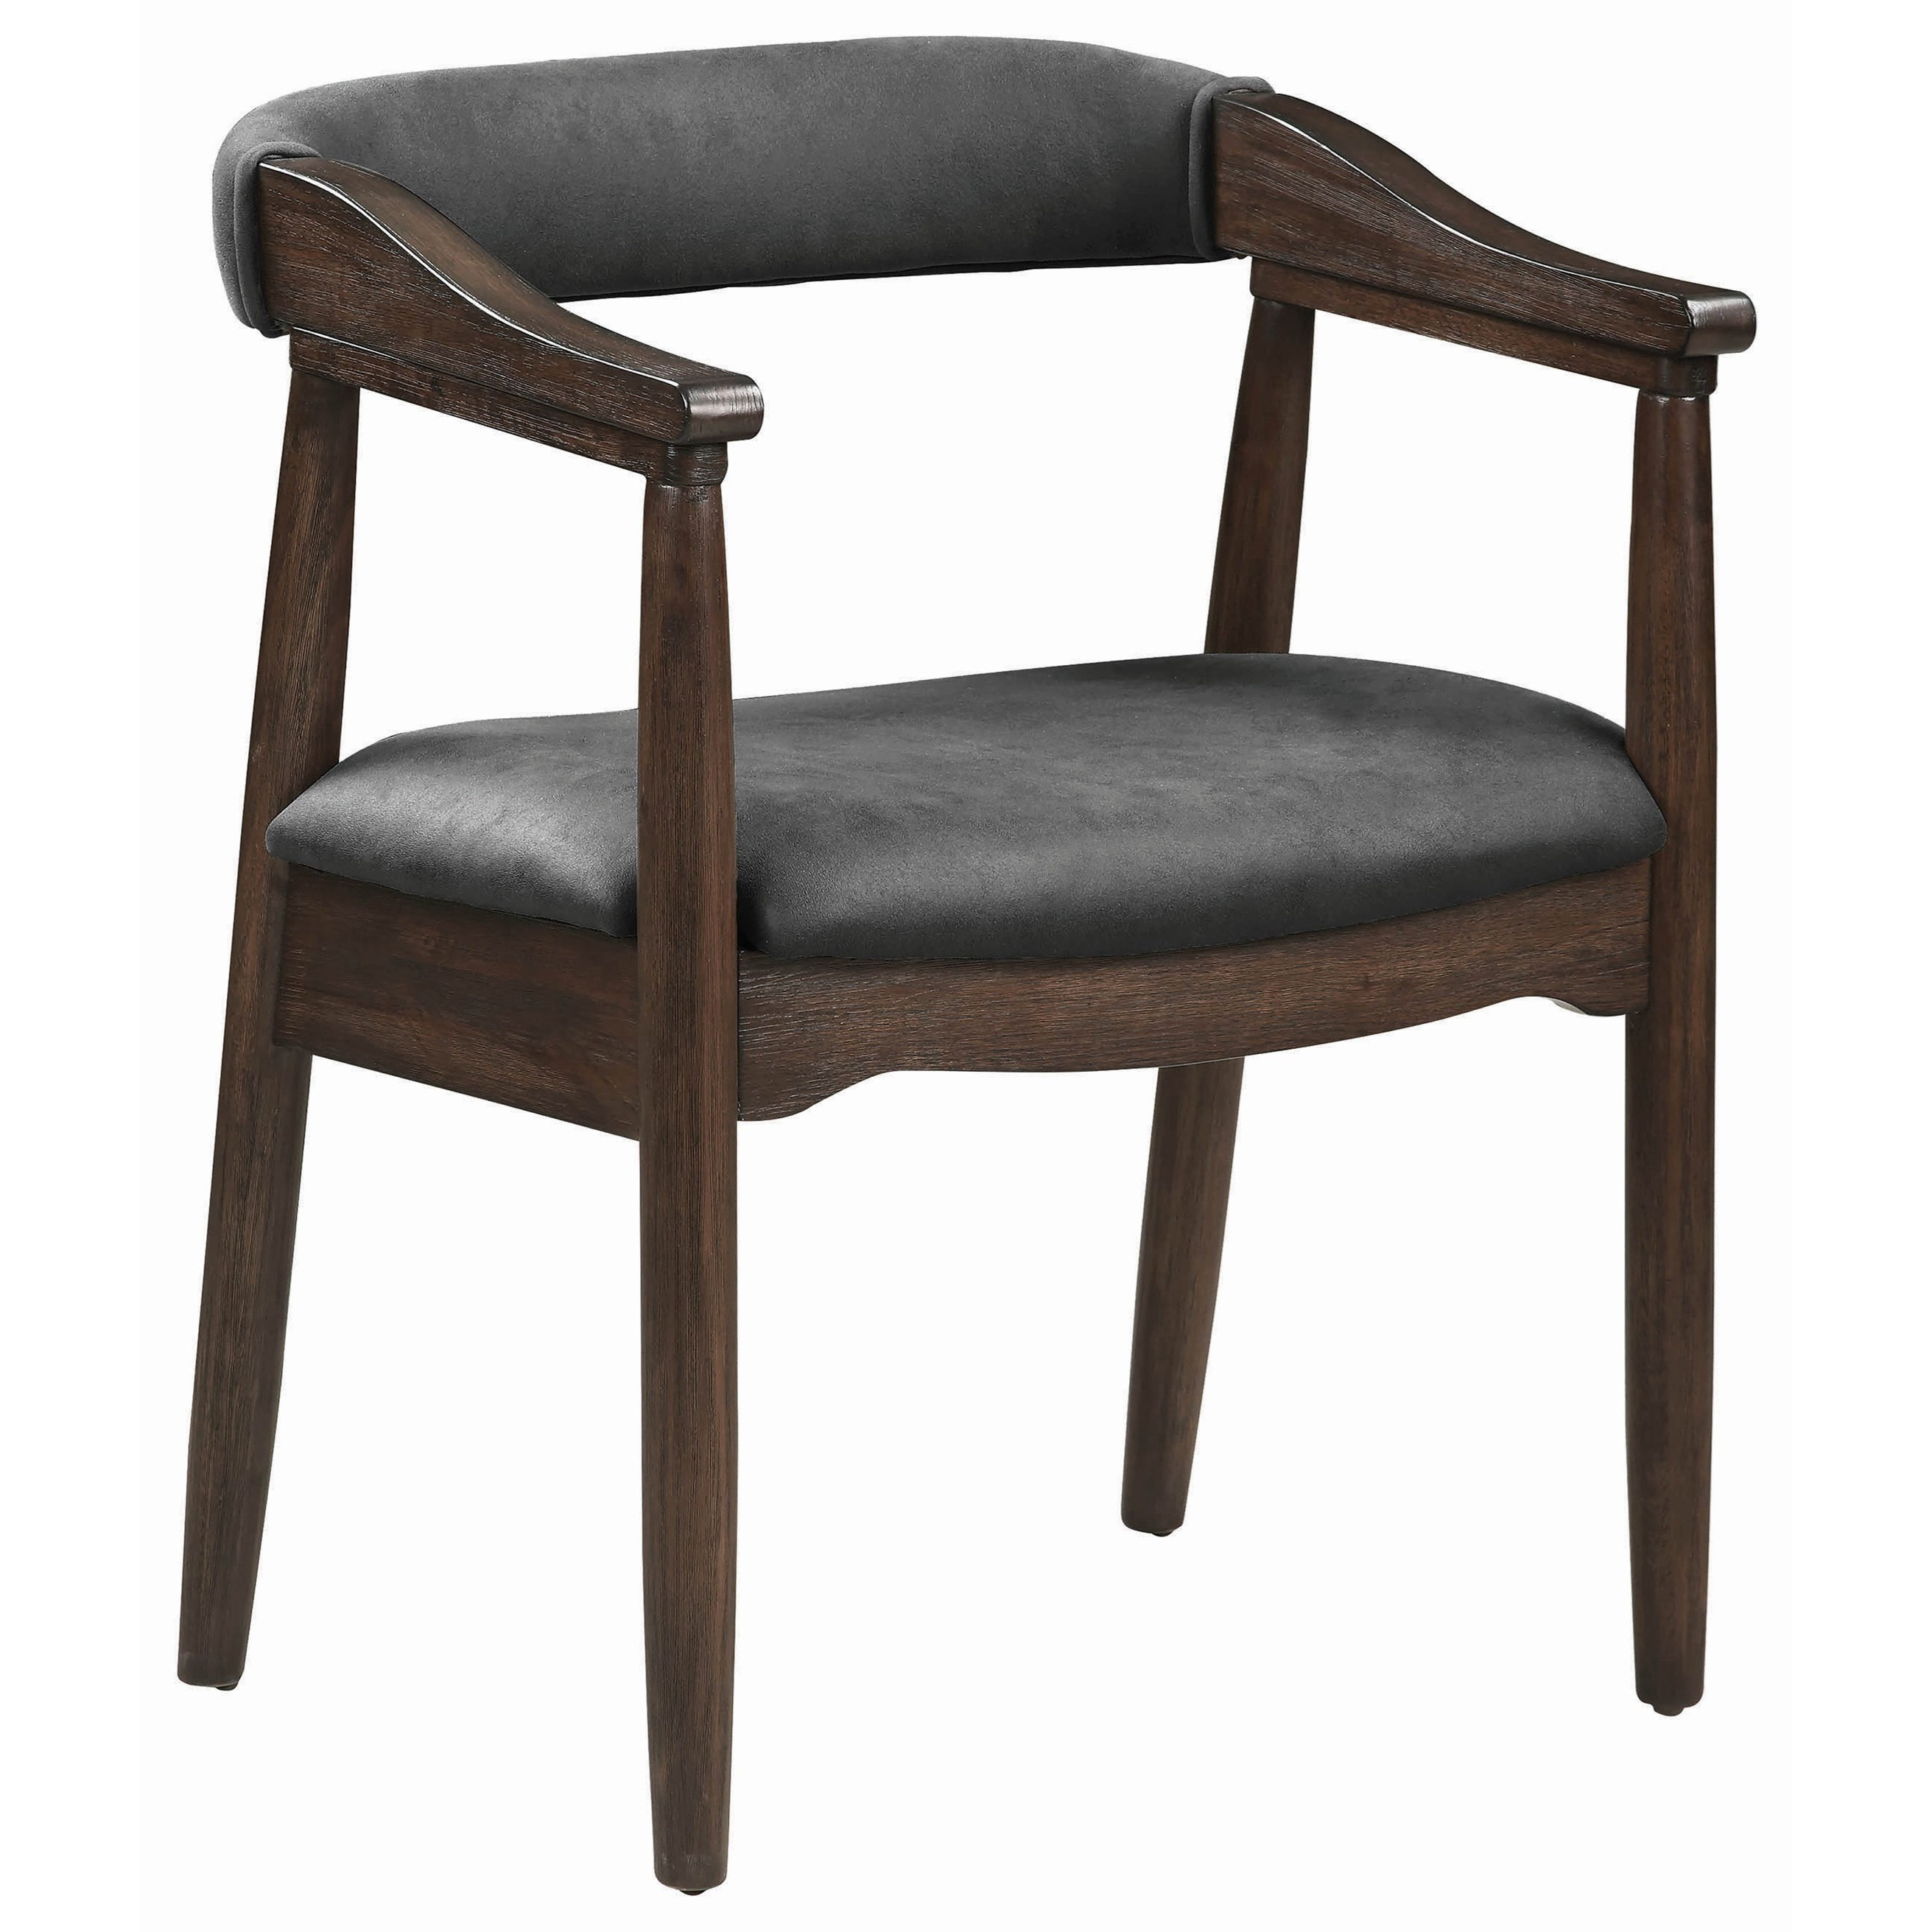 Set of Two Dining Arm Chairs